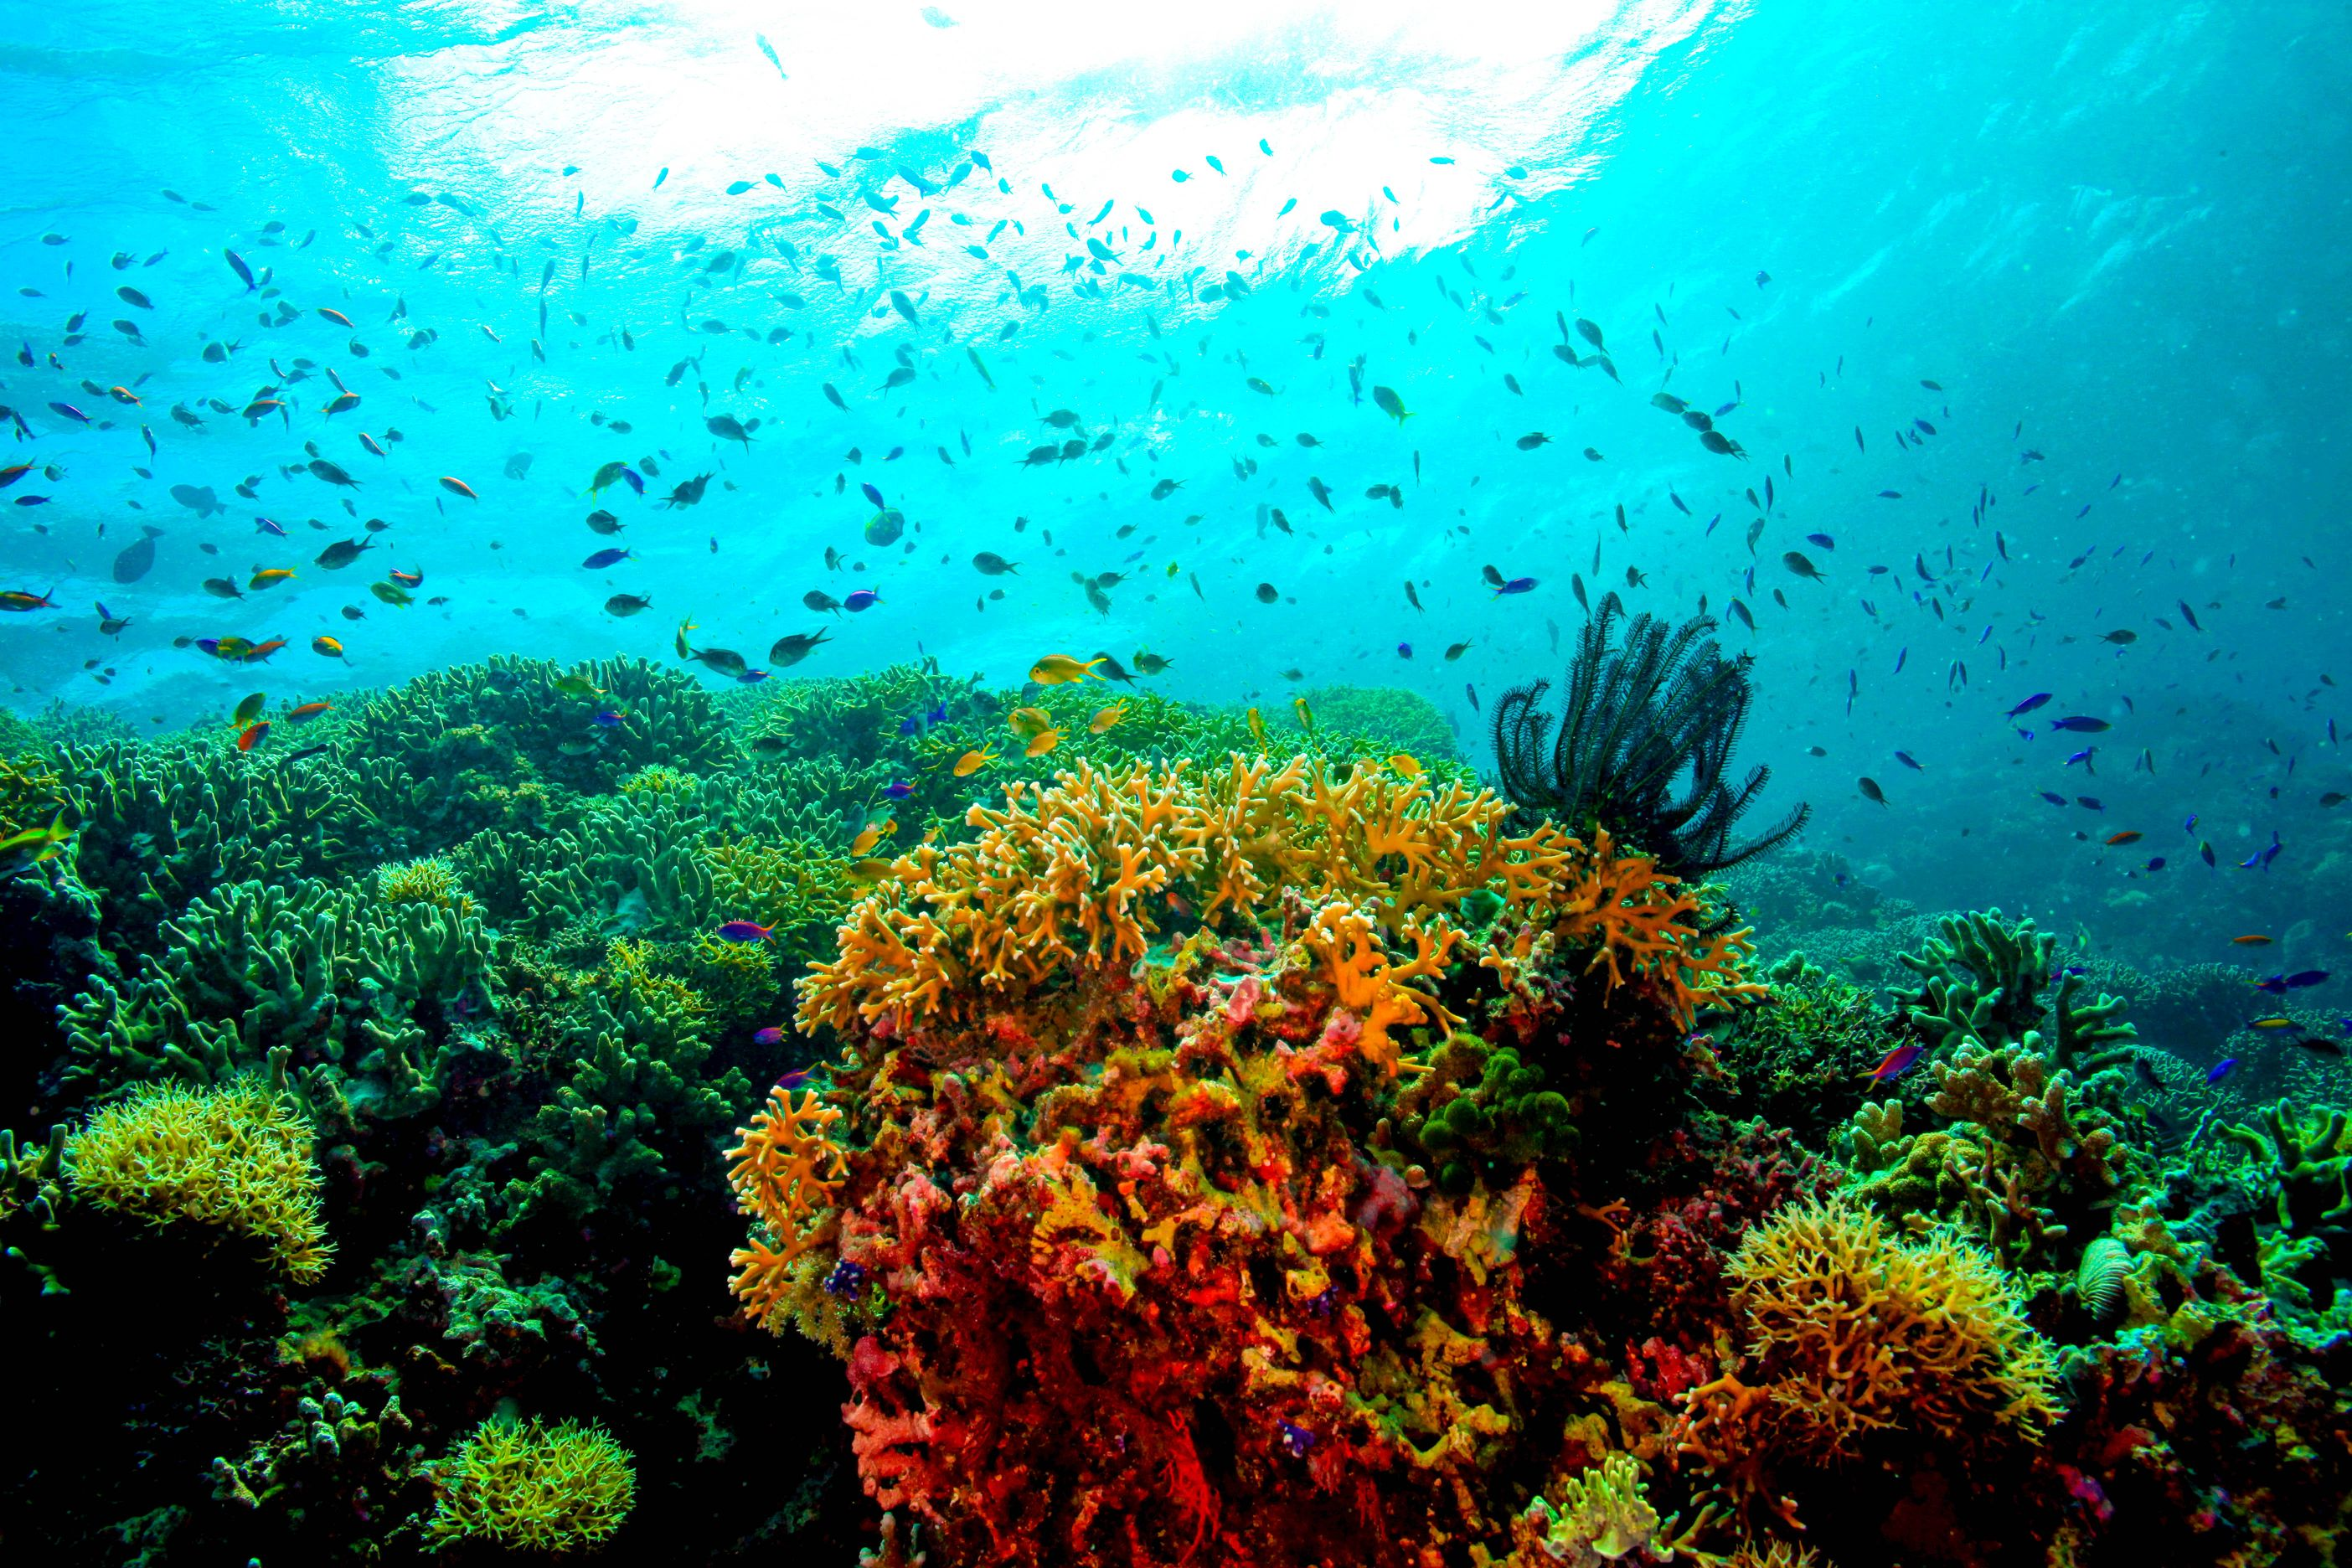 Numerous colorful fishes swim above colorful coral formations in Tubbataha Reef, Palawan, Philippines